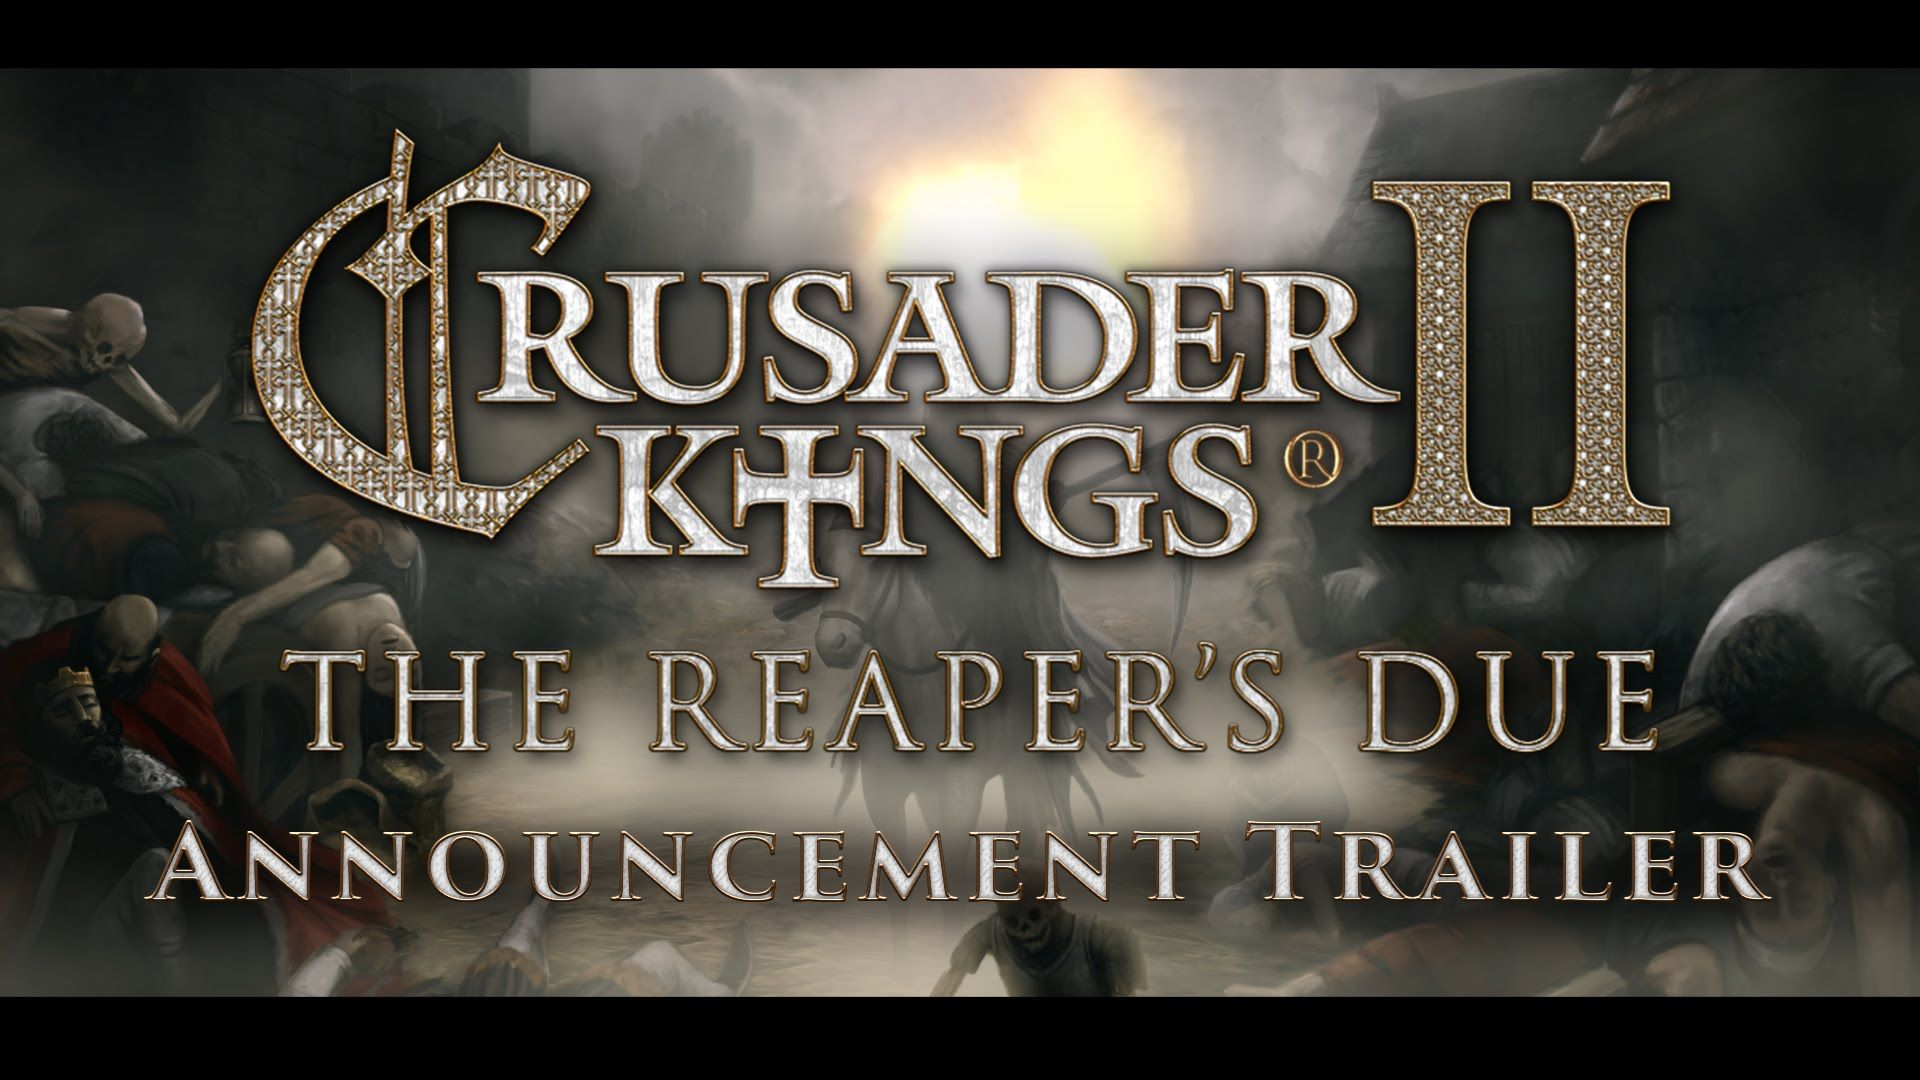 Crusader kings ii: the reaper's due | macgamestore. Com.